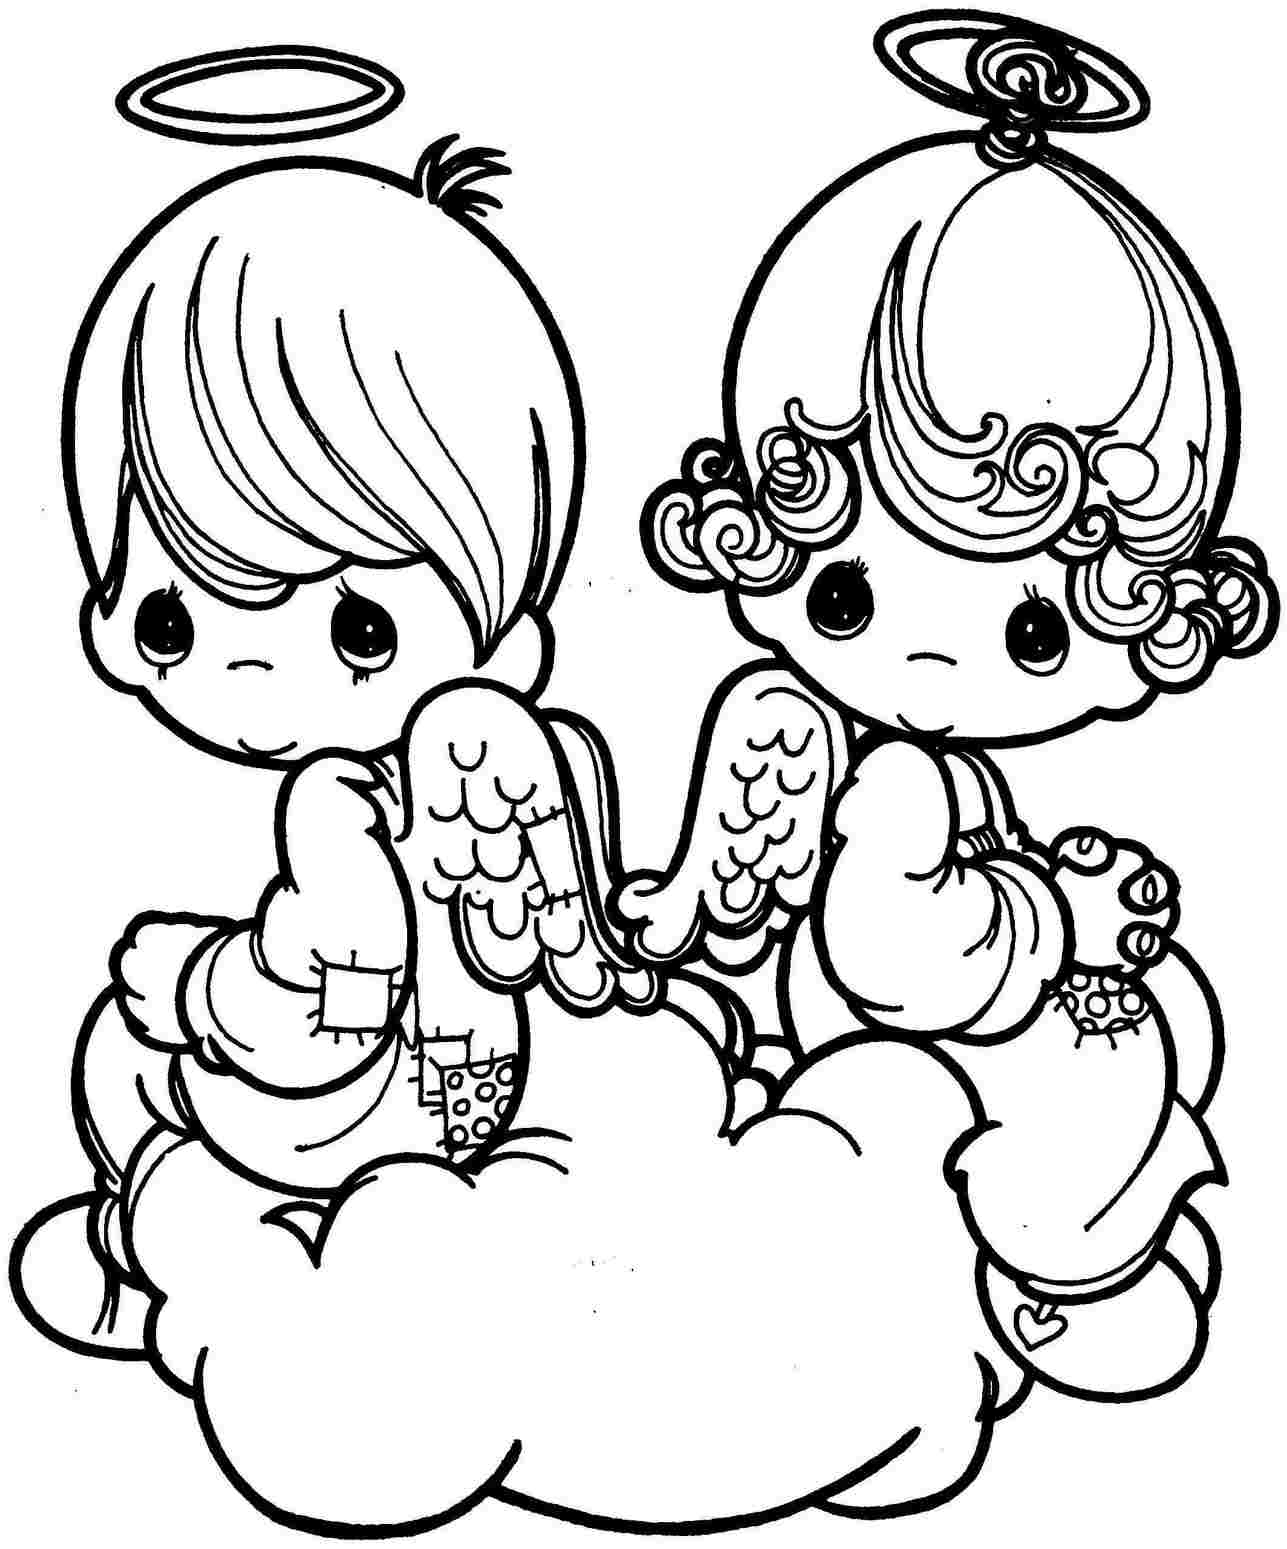 Cupid coloring pages best coloring pages for kids for Best coloring pages for kids